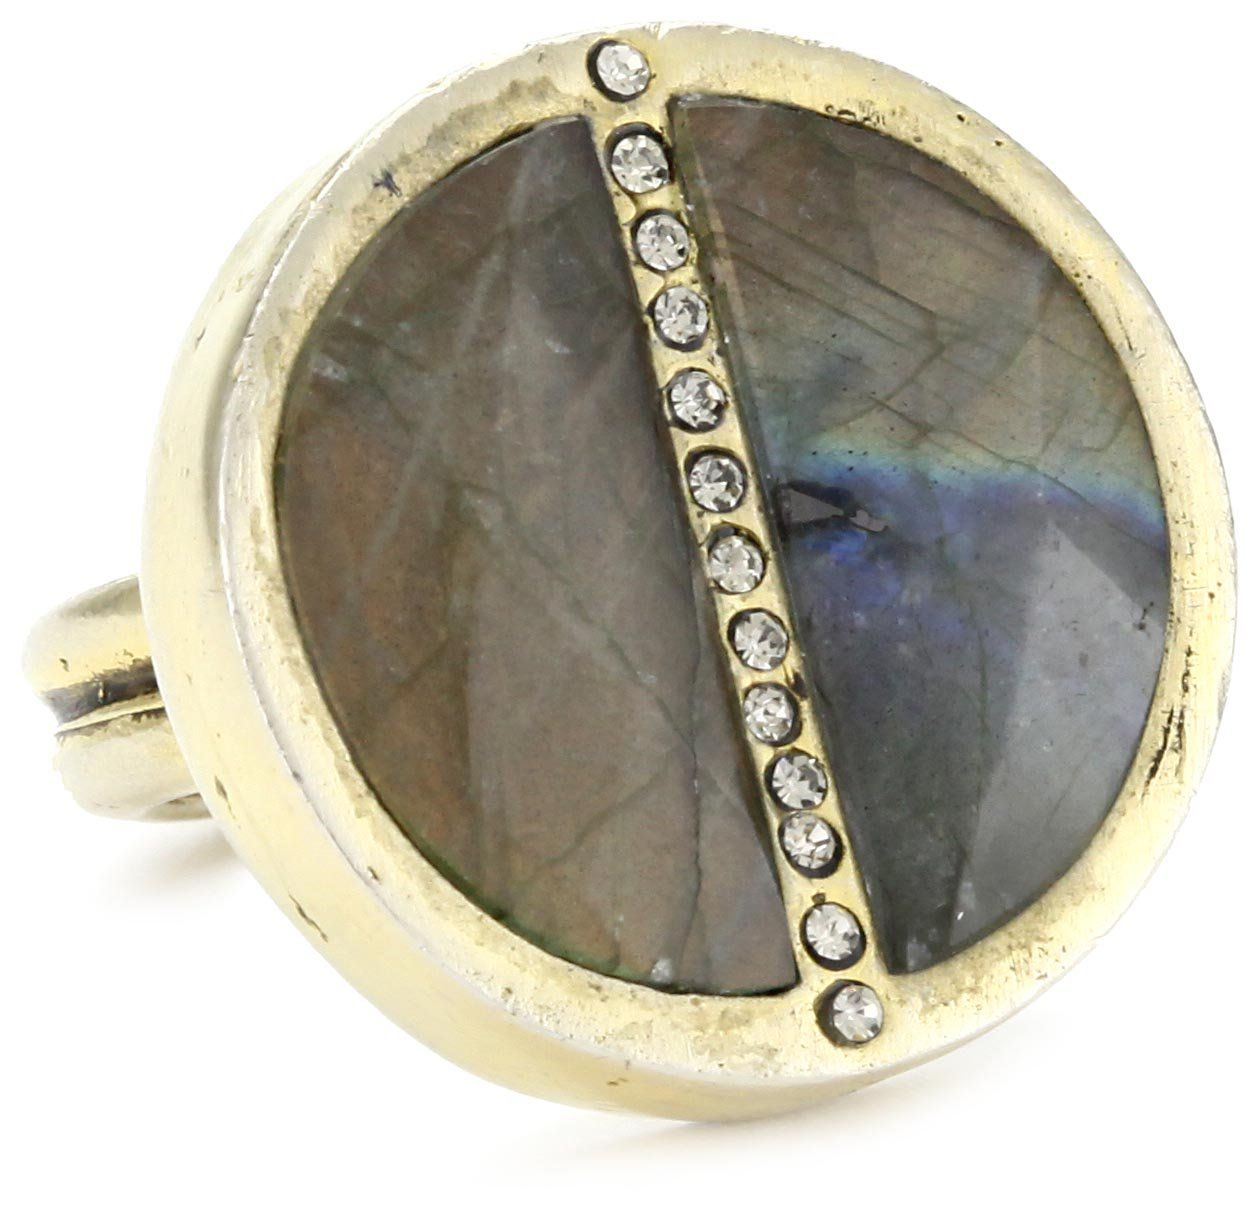 "Paige Novick ""Barcelona"" Labradorite Medallion Ring Size 7. The medallion has a row of crystal pave down the center. The medallion is outlined with a row of crystal pave. Because this is a natural stone, some variance will occur. This ring is proudly handmade. Made in United States."